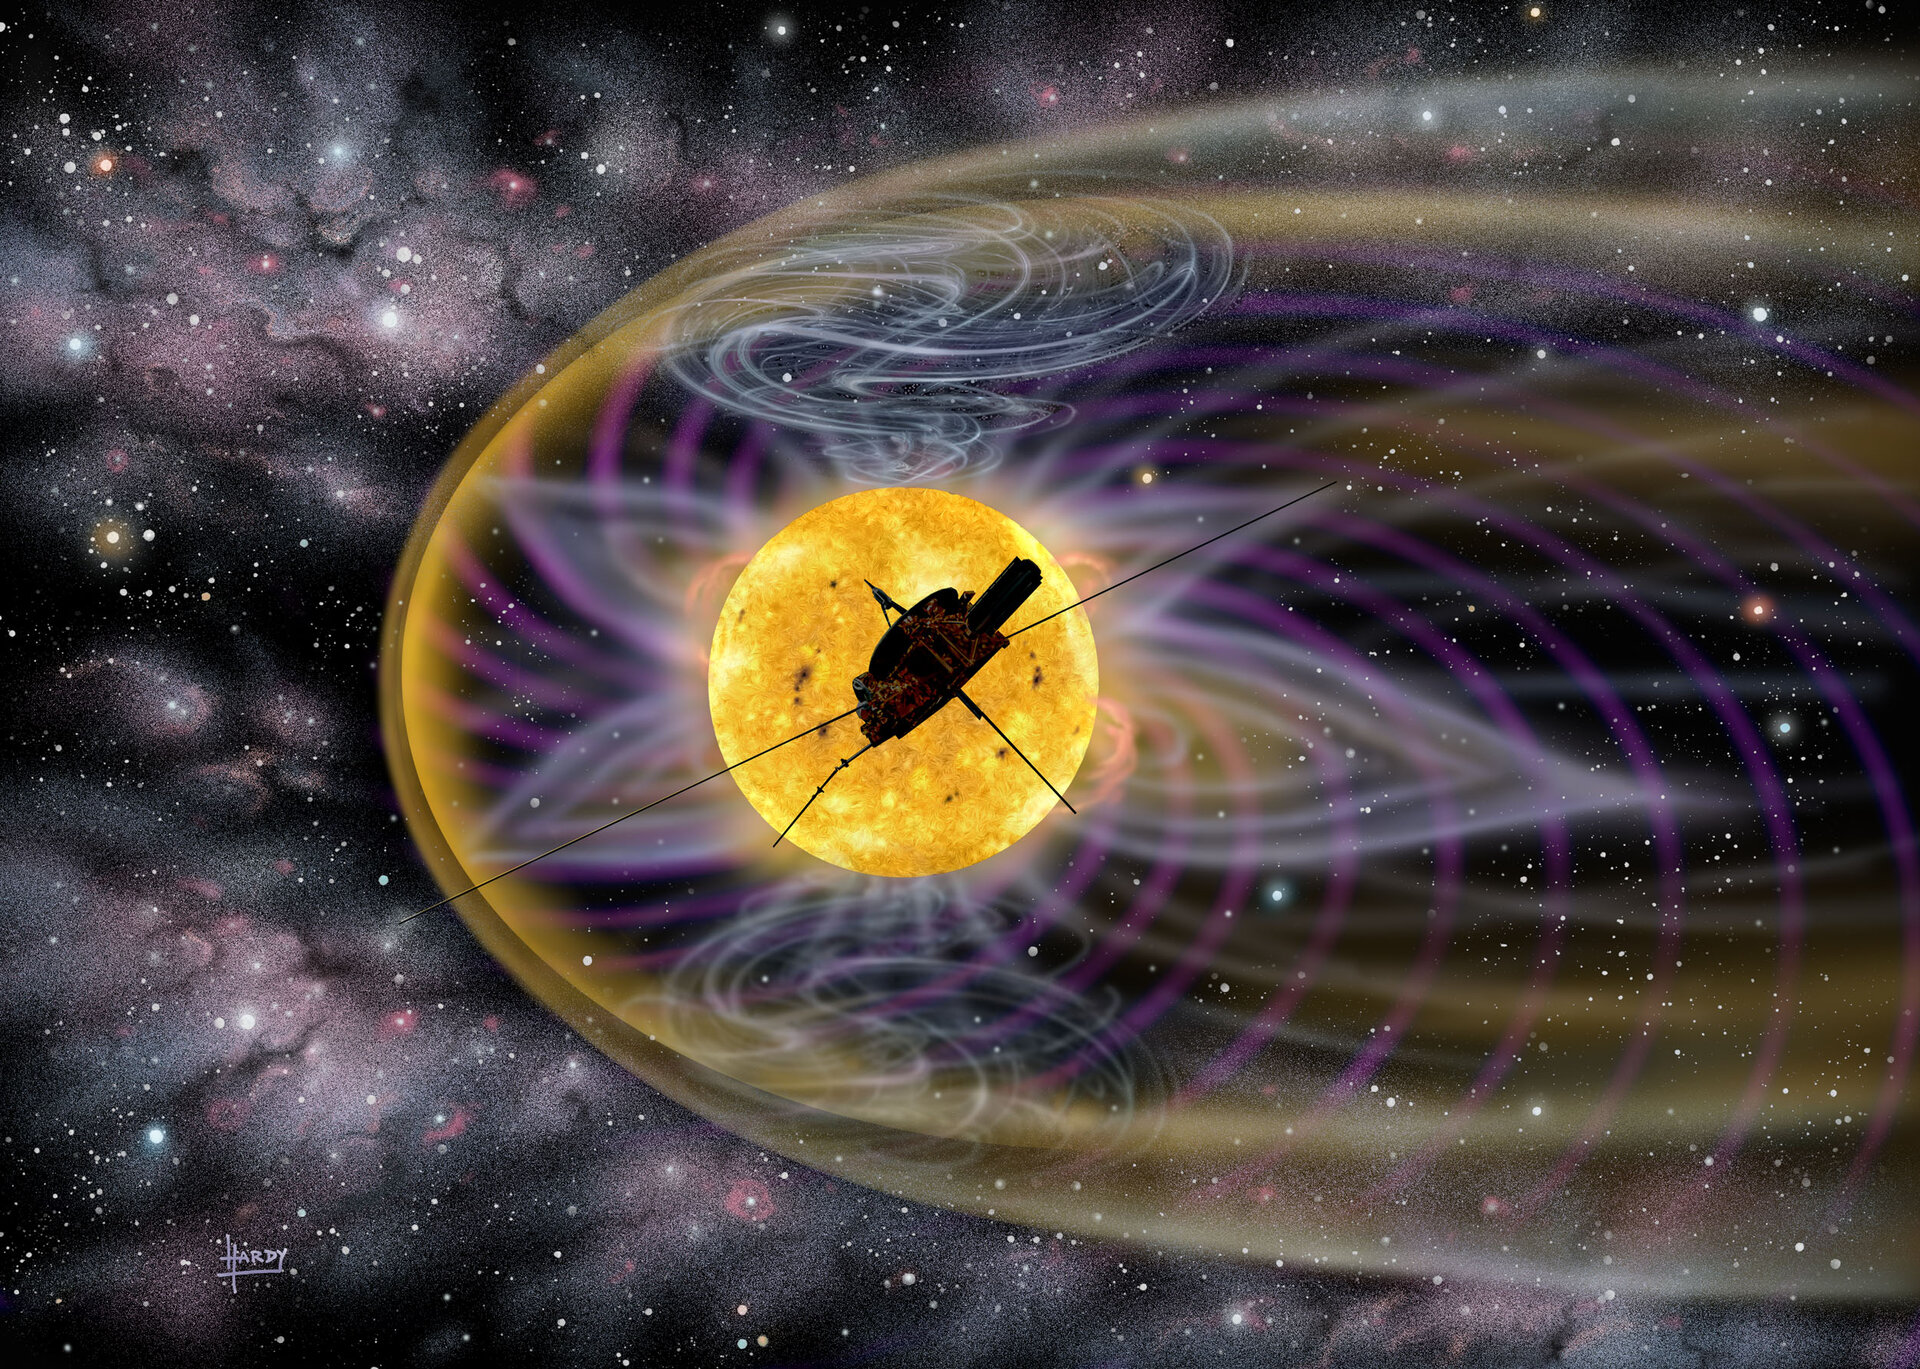 Ulysses and the heliosphere